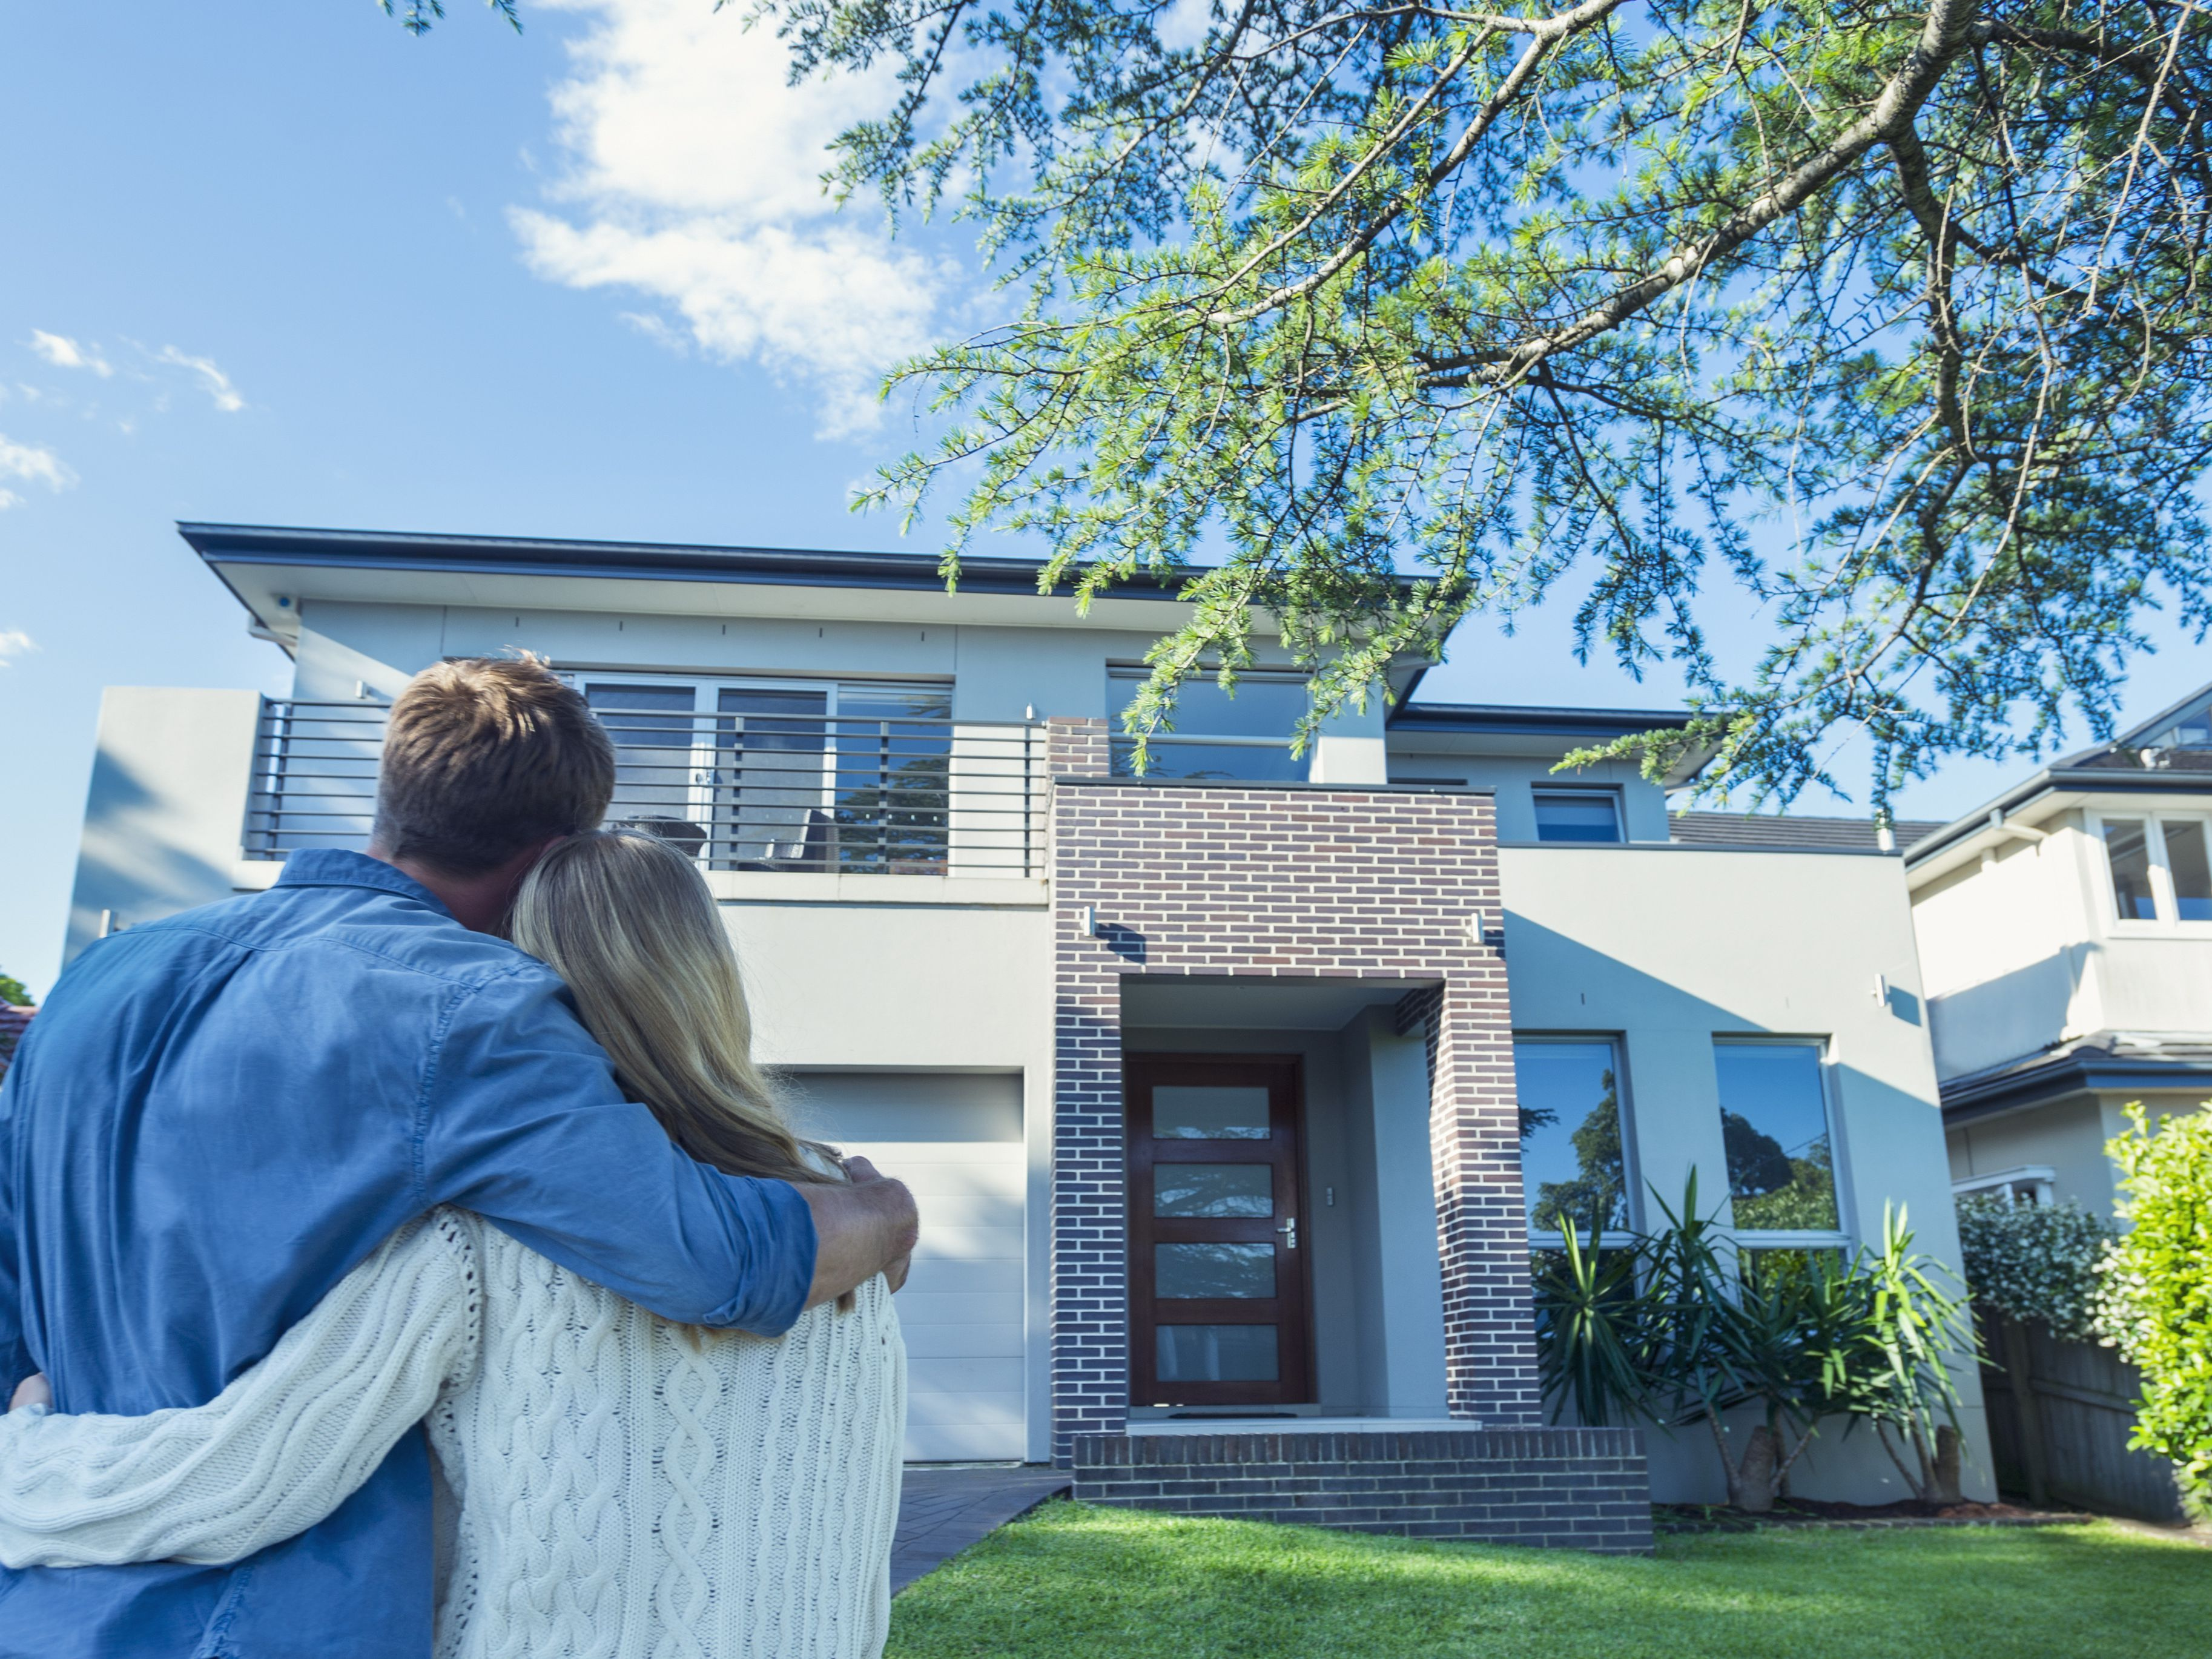 Using Collateral Loans to Borrow Against Your Assets